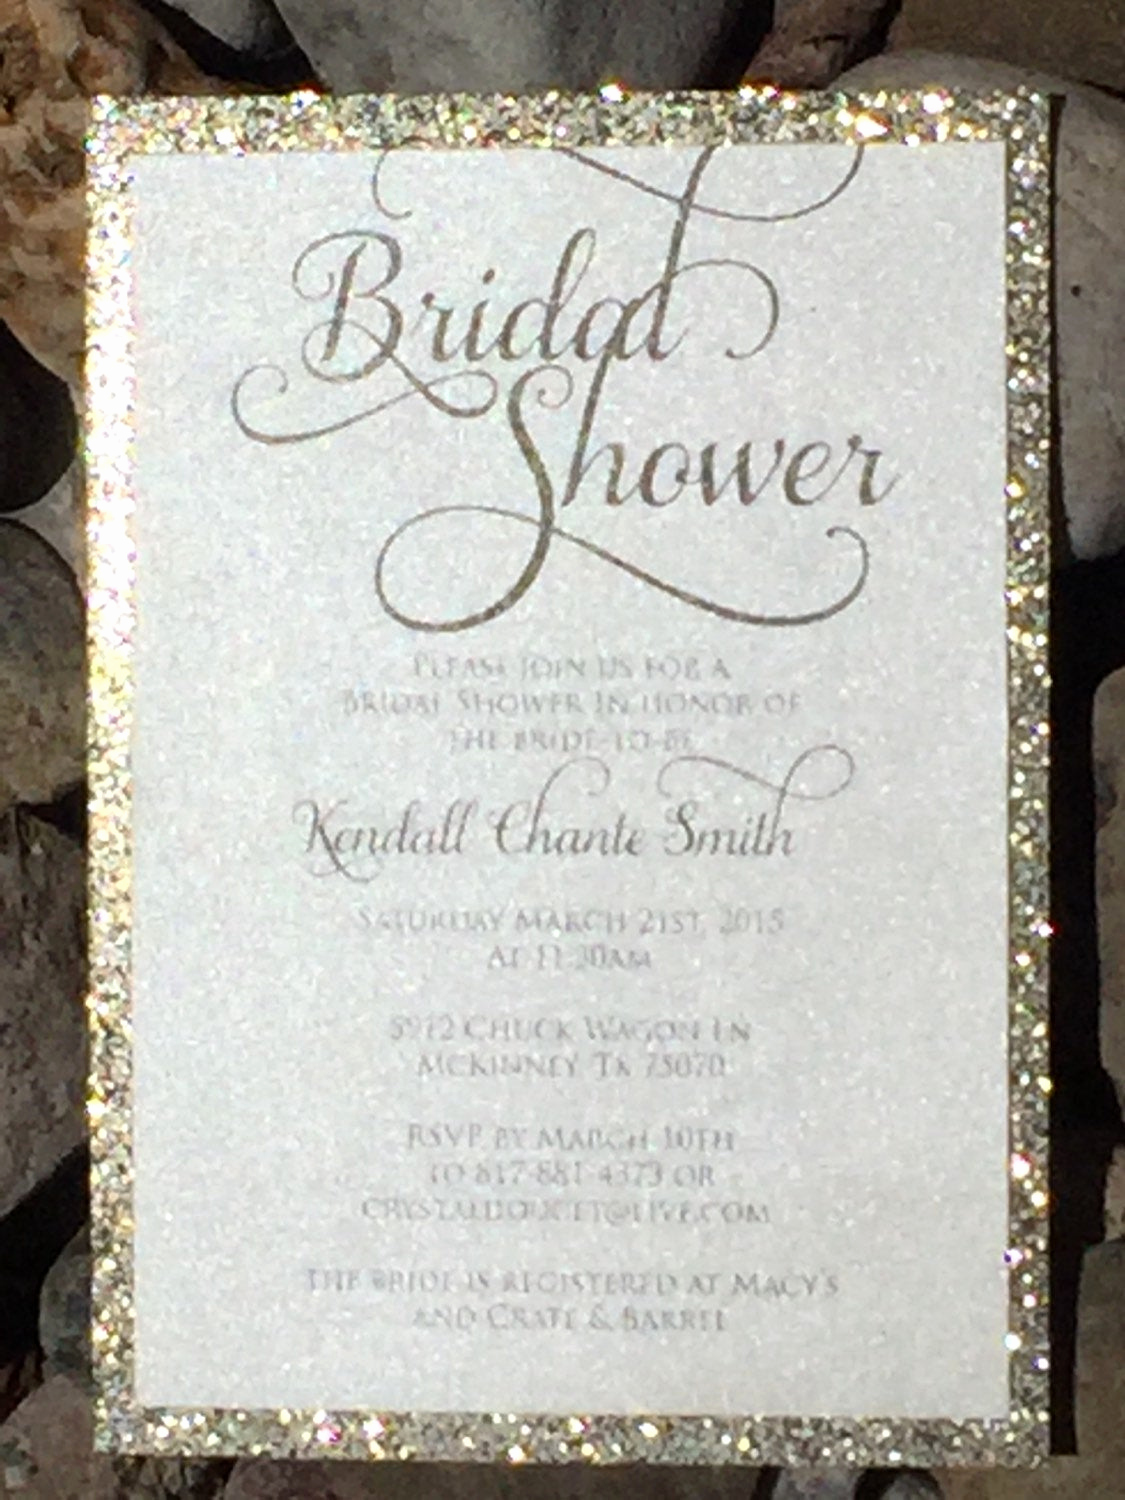 Bridal Shower Invitation Images Luxury Bridal Shower Invitation Glitter Bridal Shower Invitations